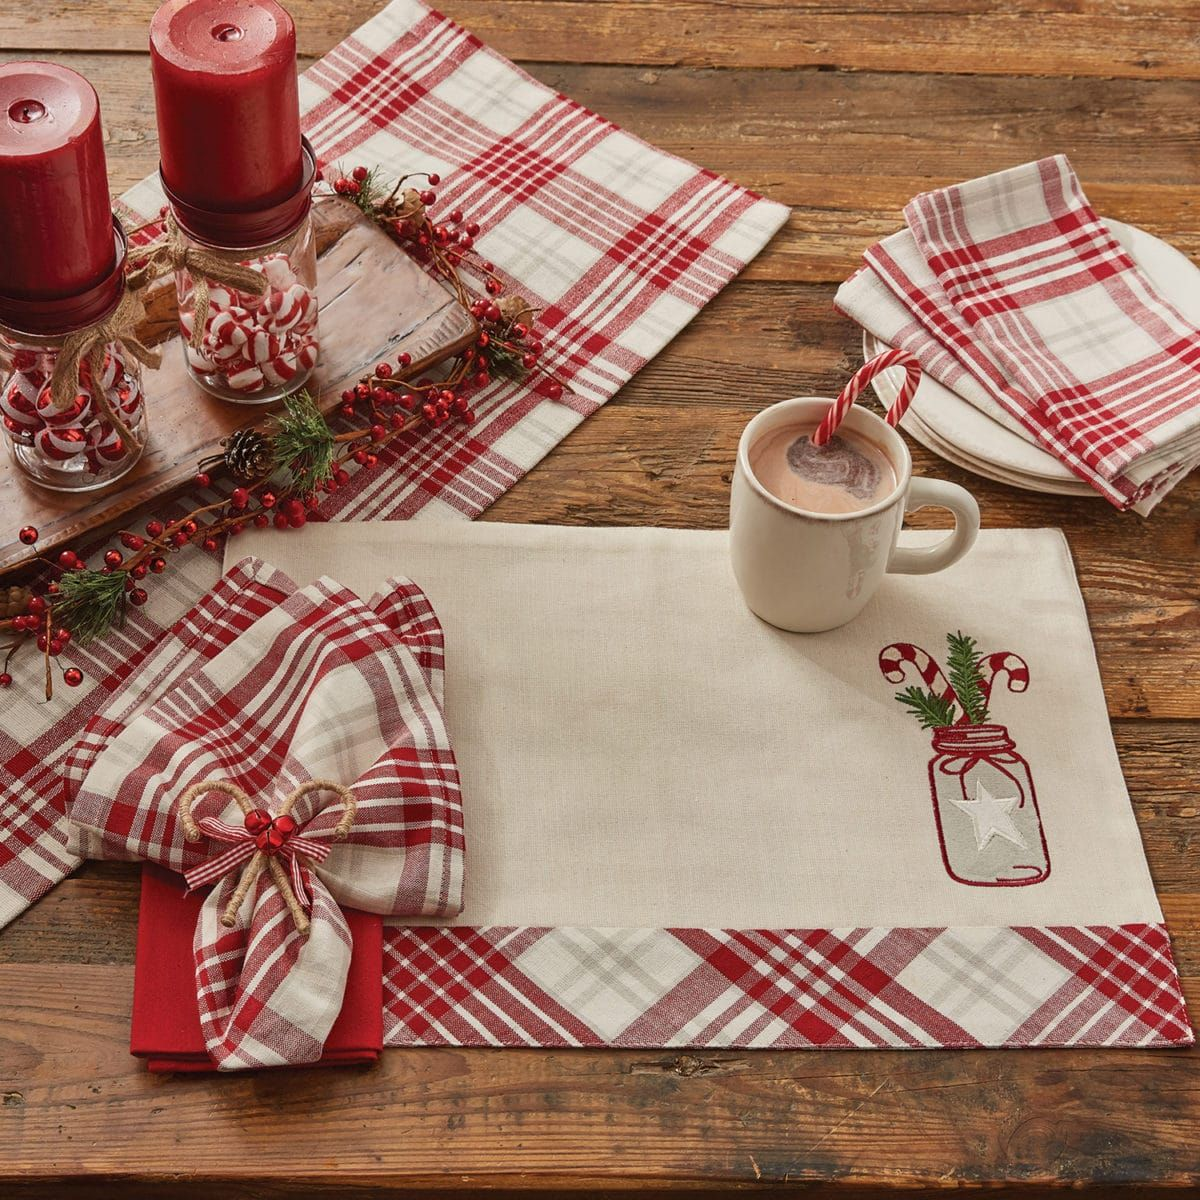 Mason Peppermint Placemat Piper Classics Christmas Placemats Christmas Table Centerpieces Christmas Crafts For Gifts